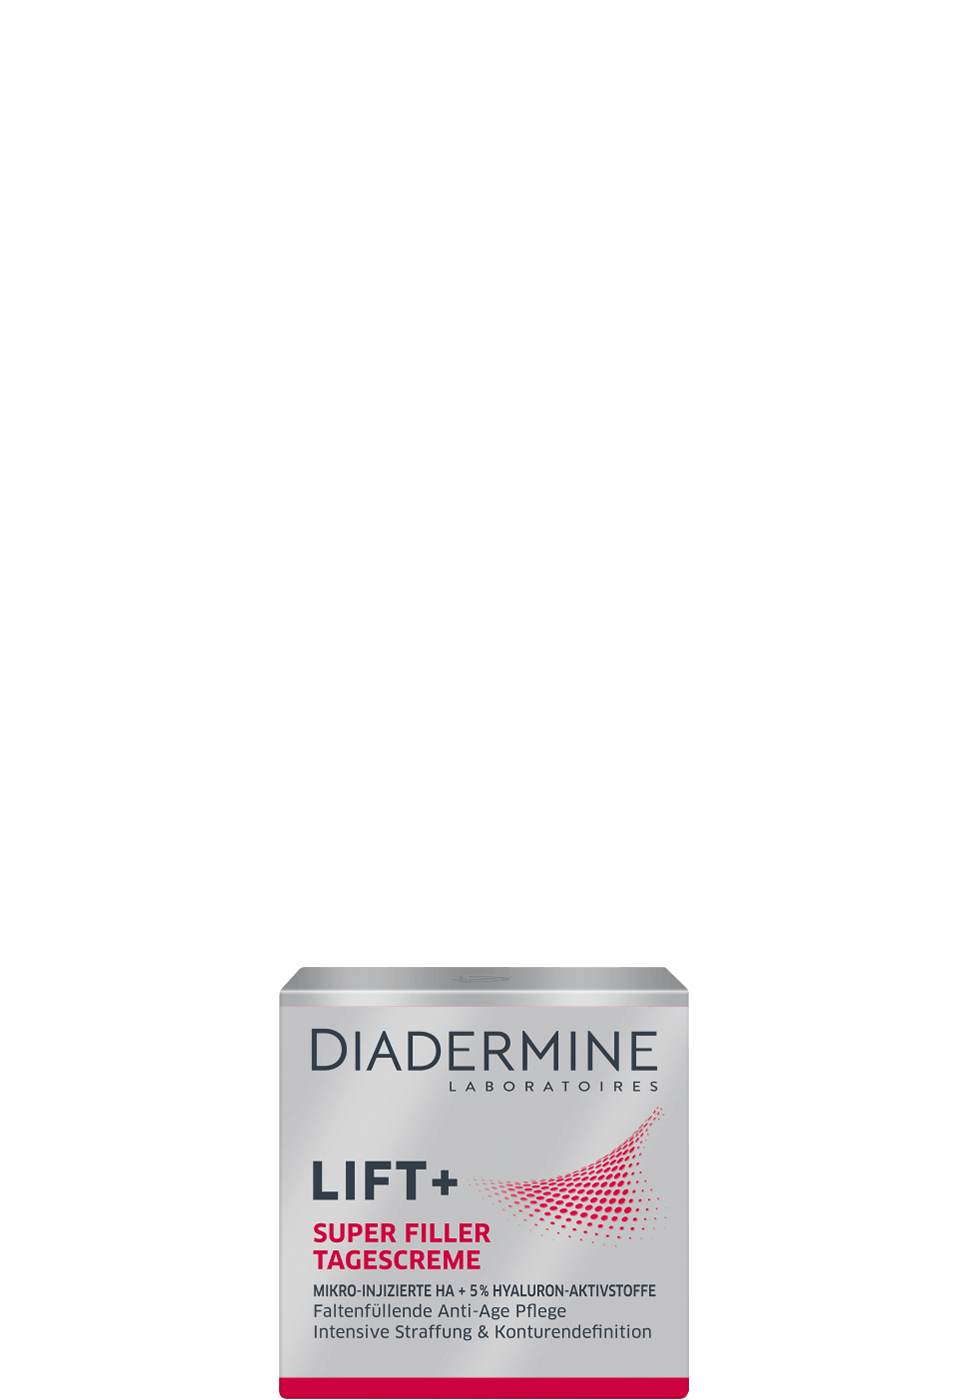 diadermine_at_lift_plus_super_filler_tagescreme_970x1400